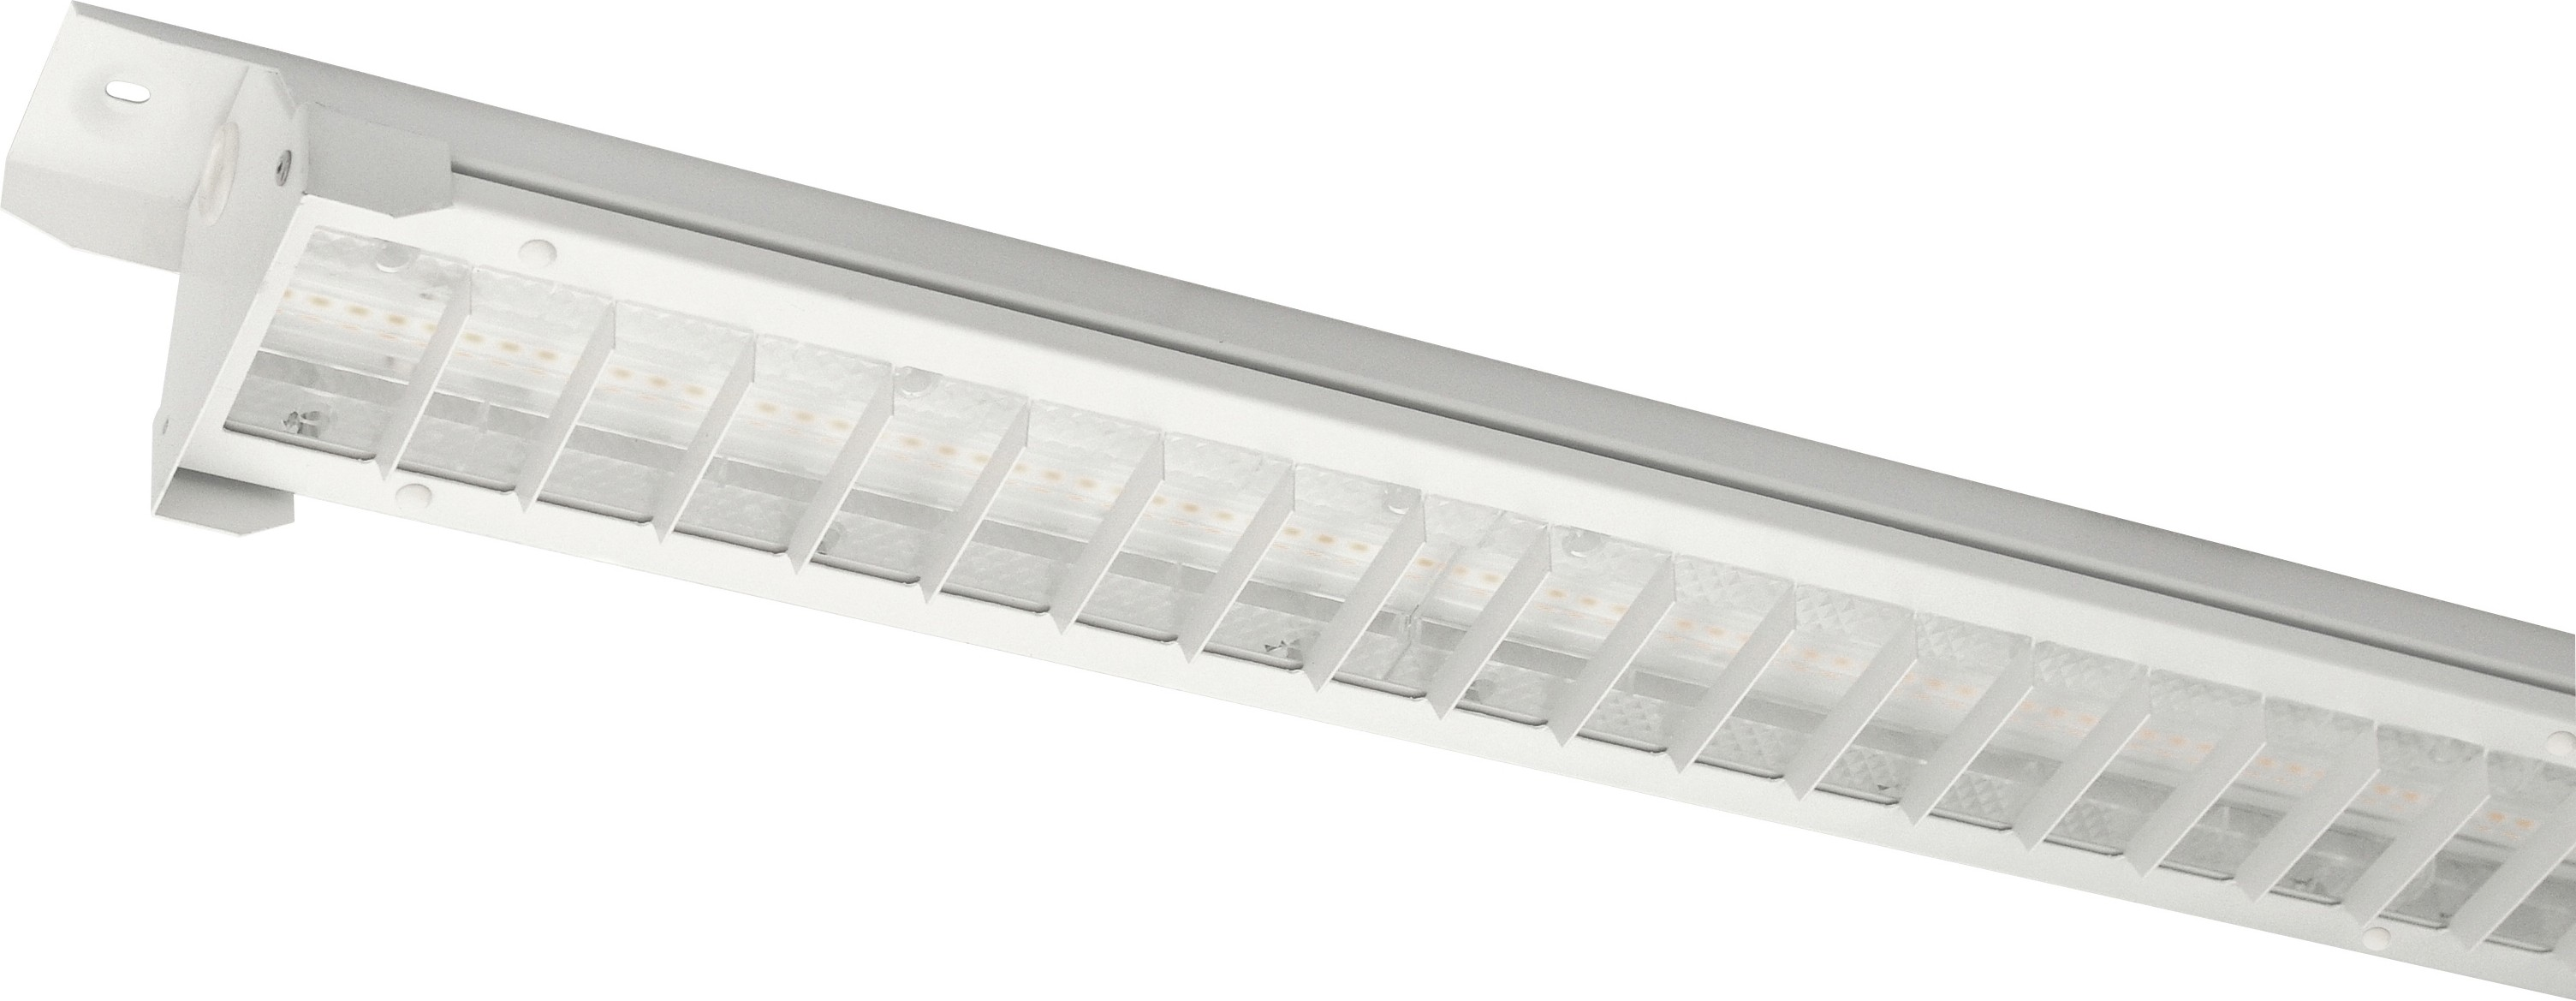 Continuous line and batten luminaires